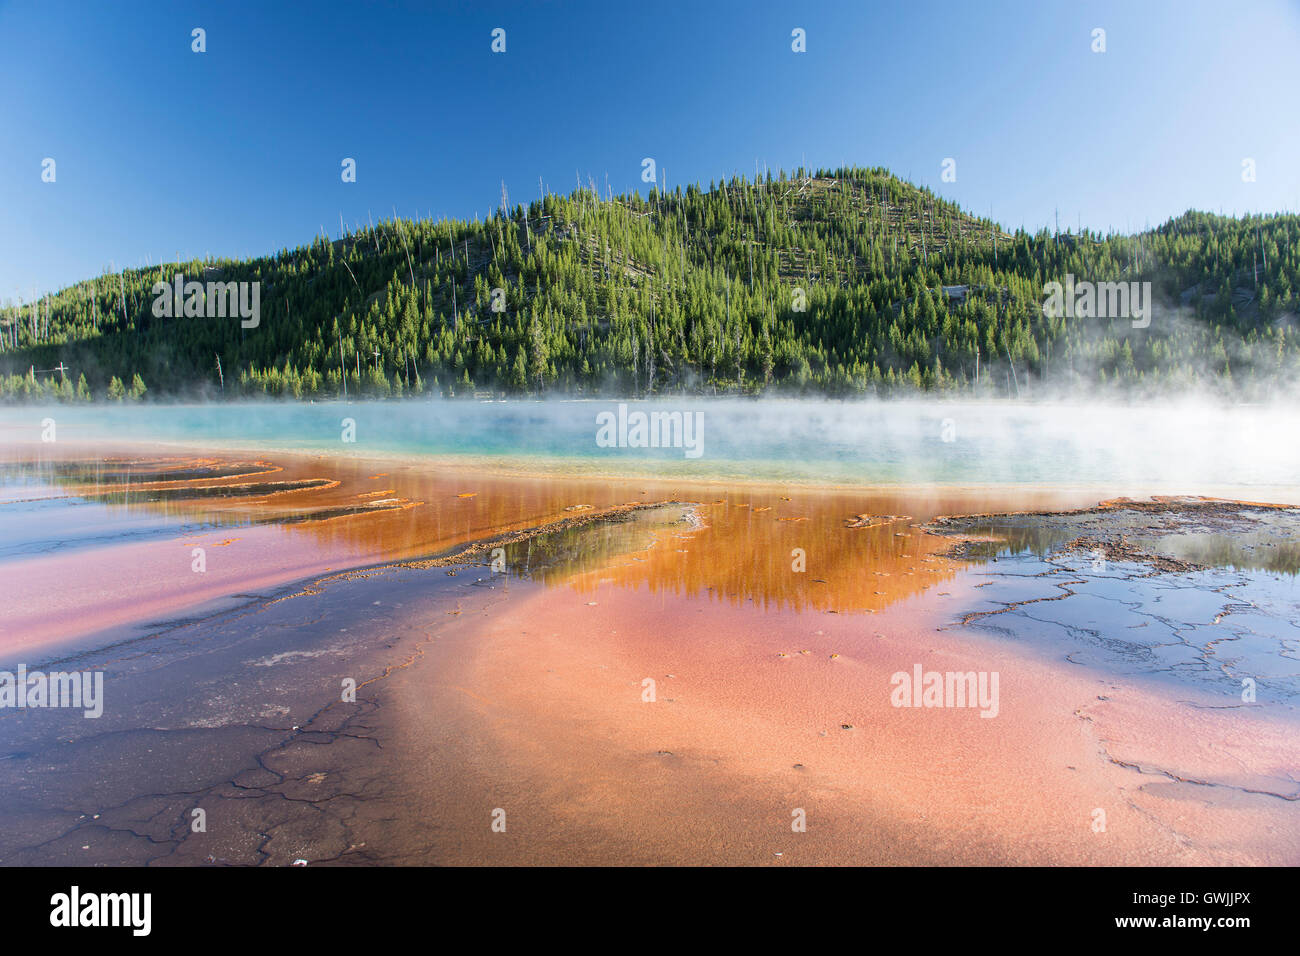 Grand Prismatic Spring in Midway Geyser Basin, with steam and reflections. Yellowstone National Park, Wyoming, United States Stock Photo